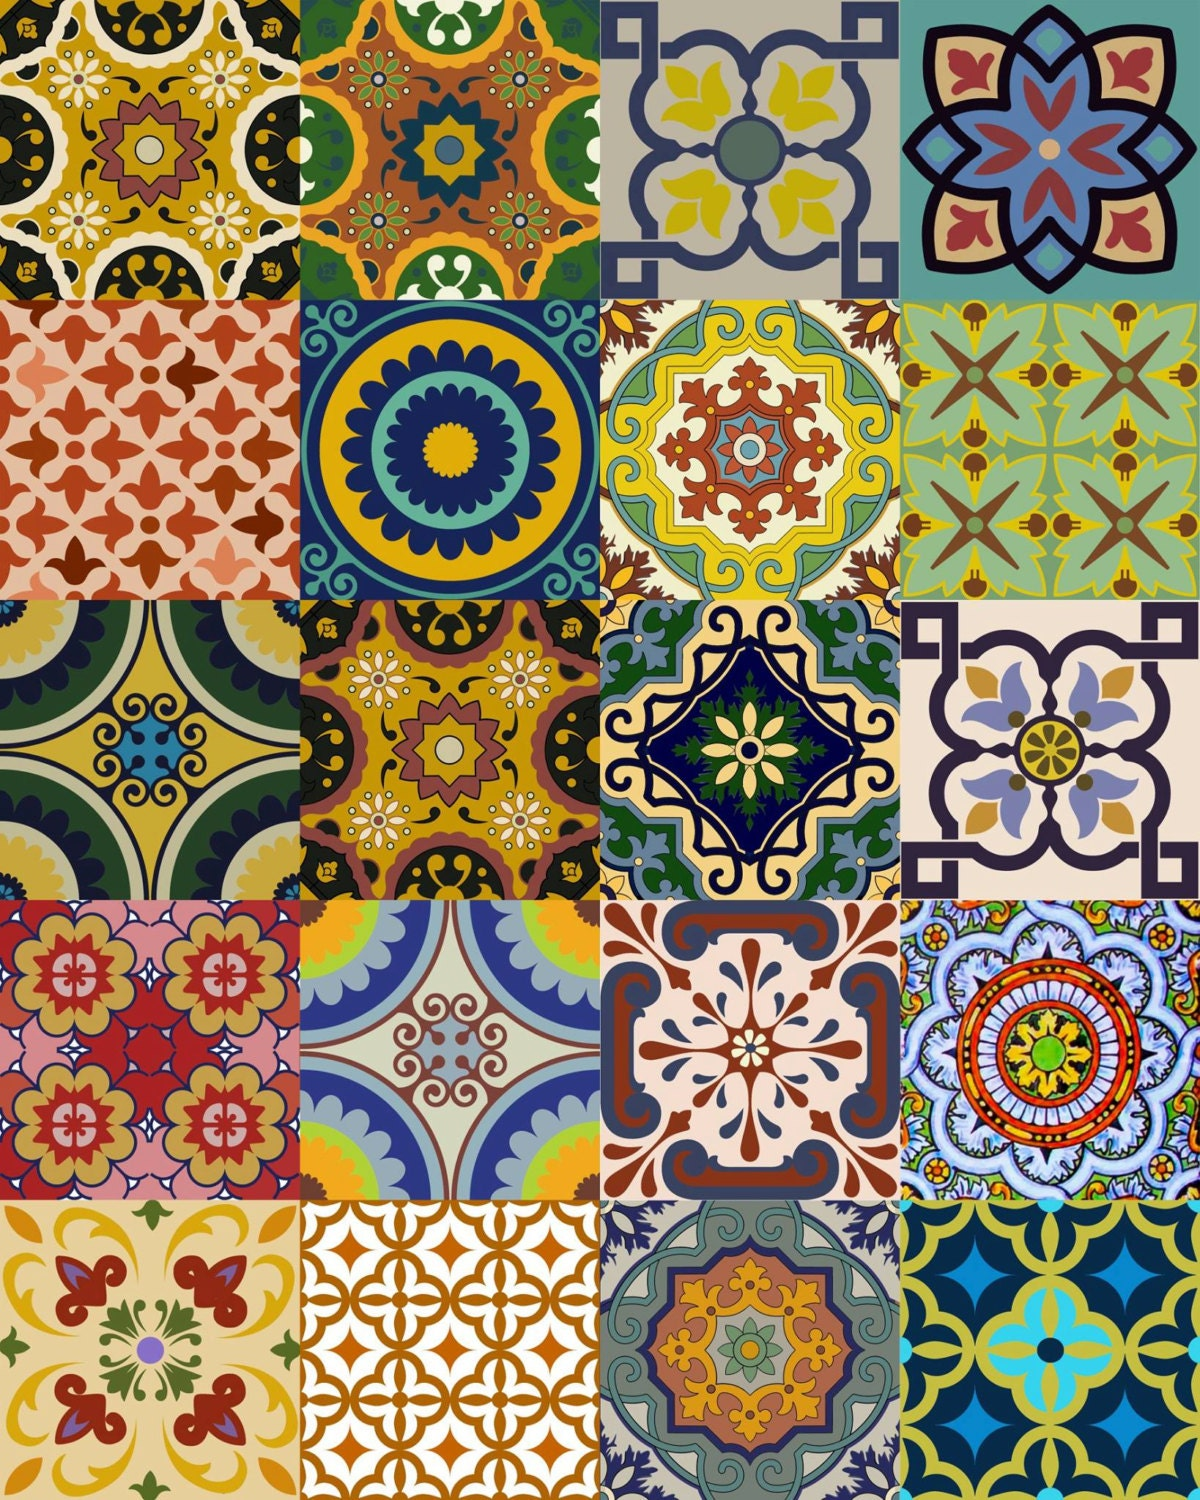 Mexican Tiles: Splashback 24 Tile Stickers Mexican Tile Stickers Mixed For